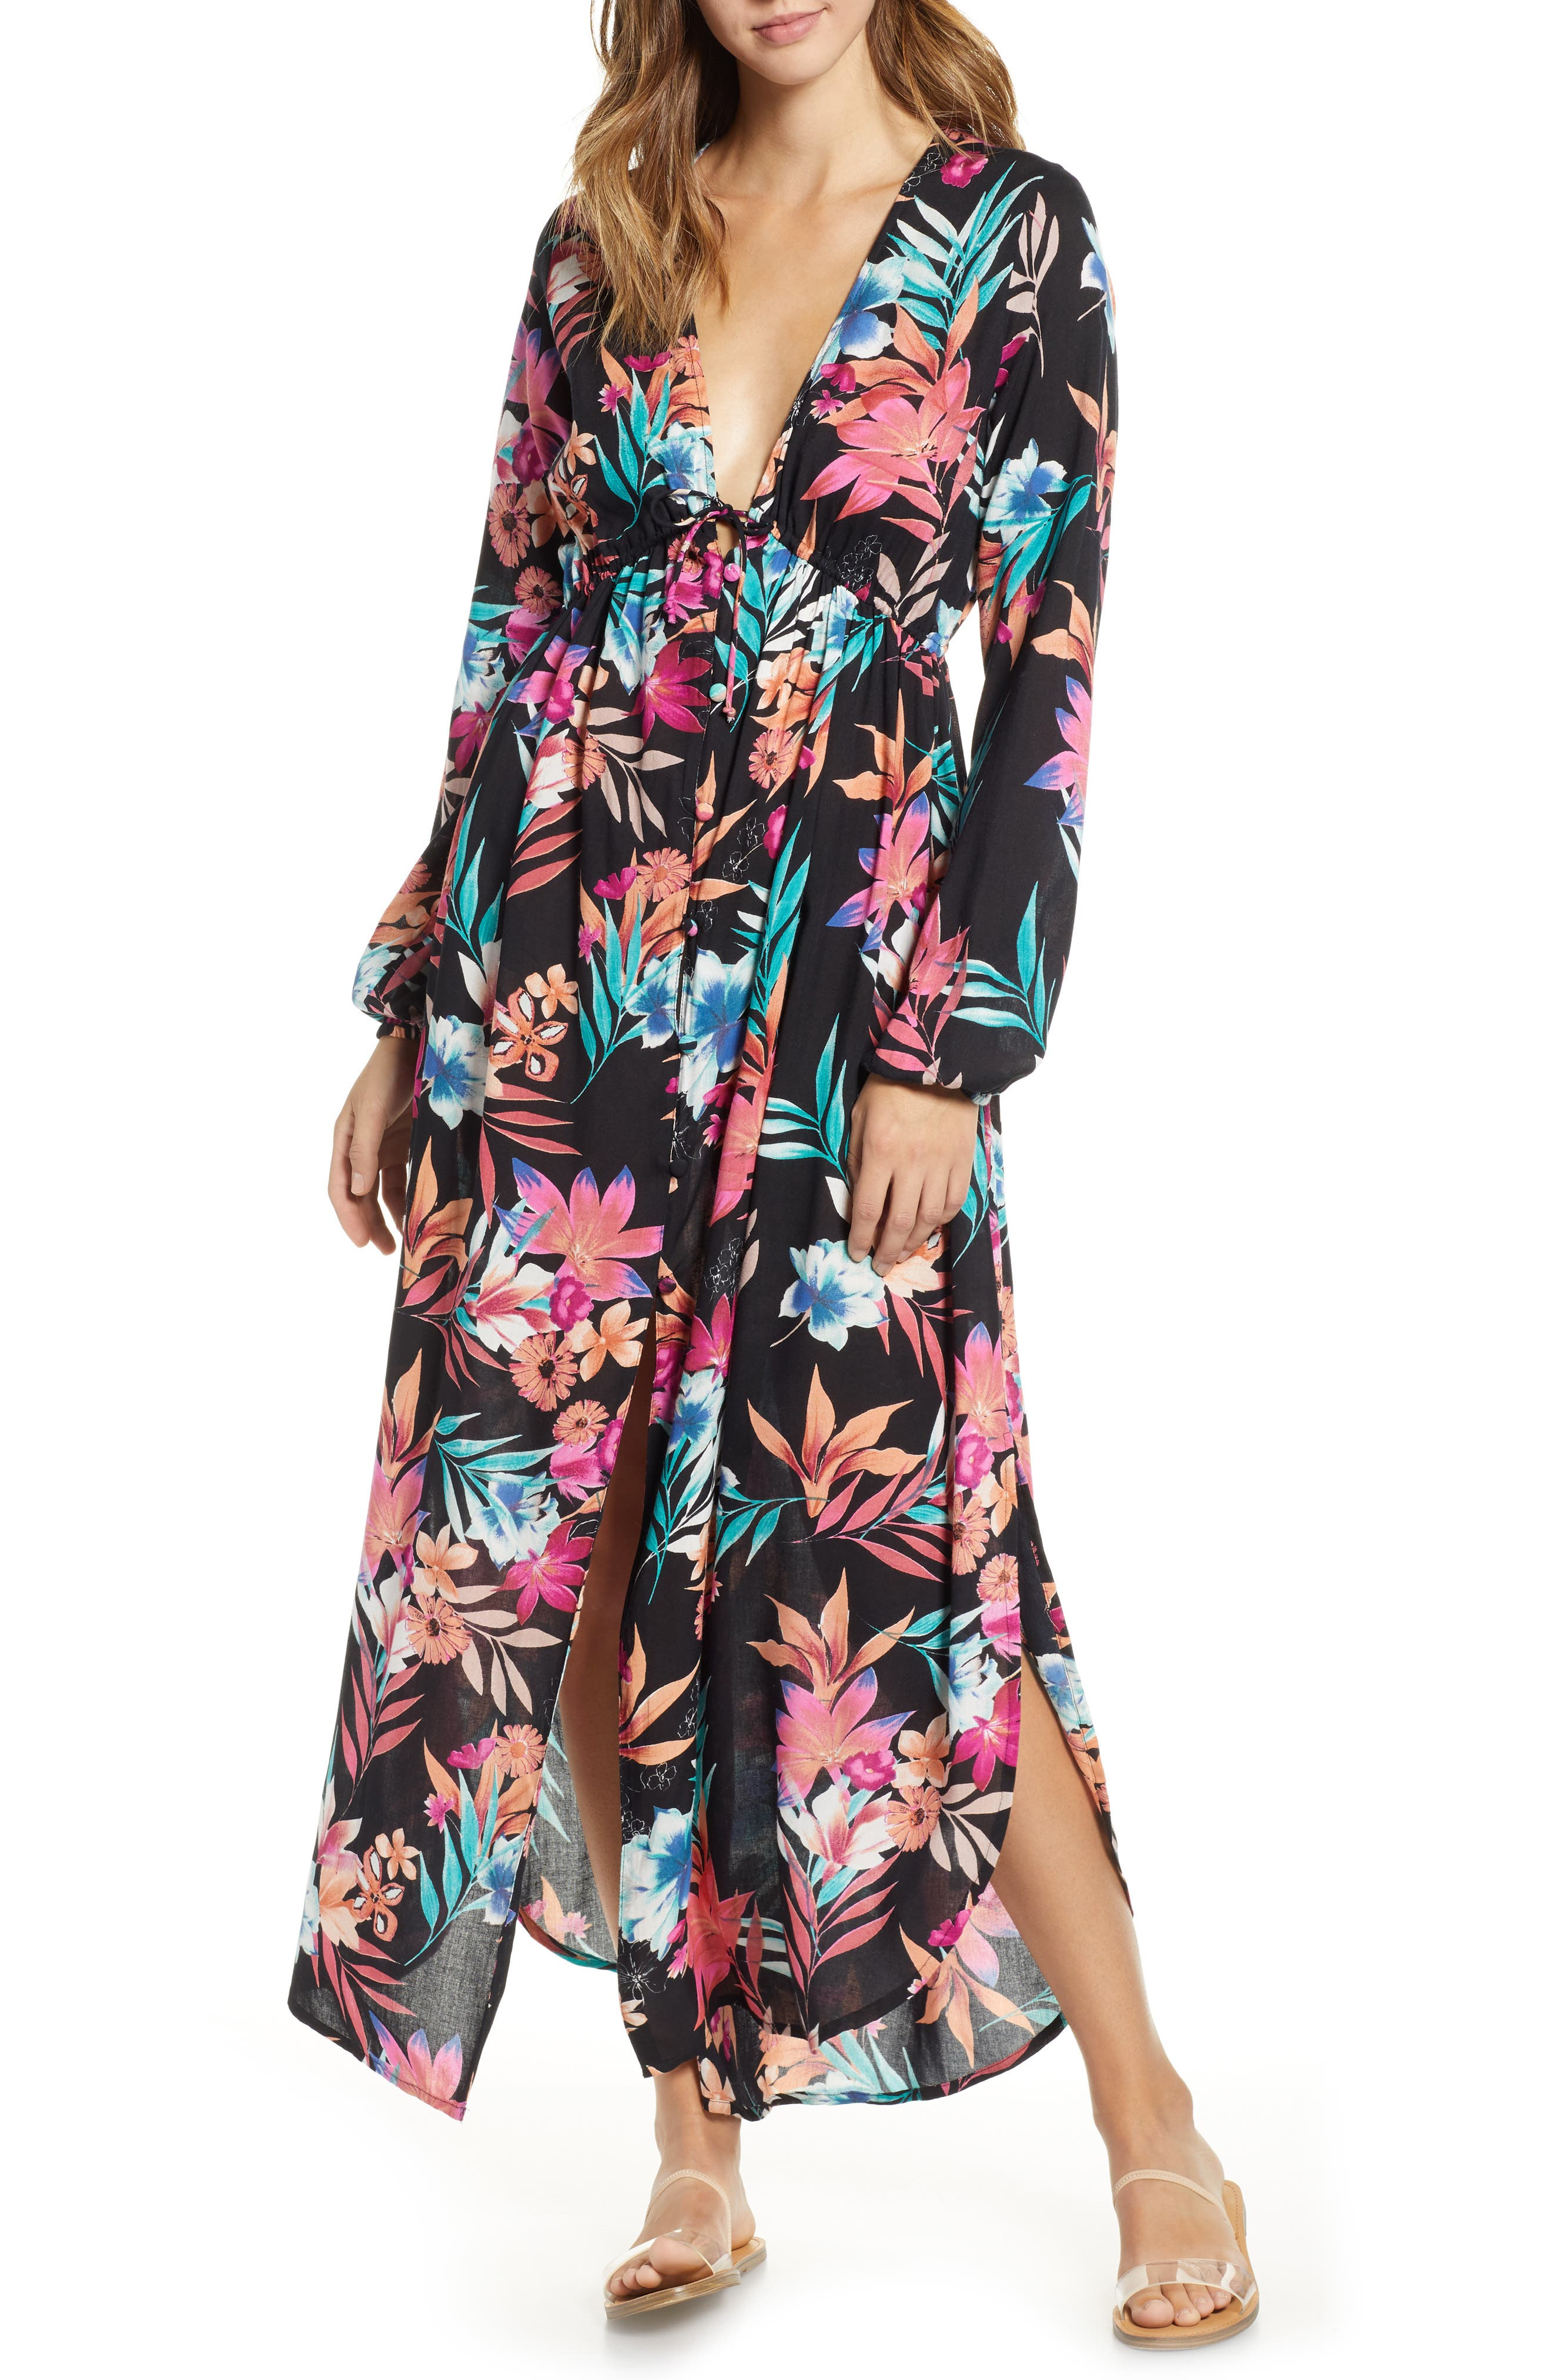 Rip Curl Sundrenched Maxi Dress, Black